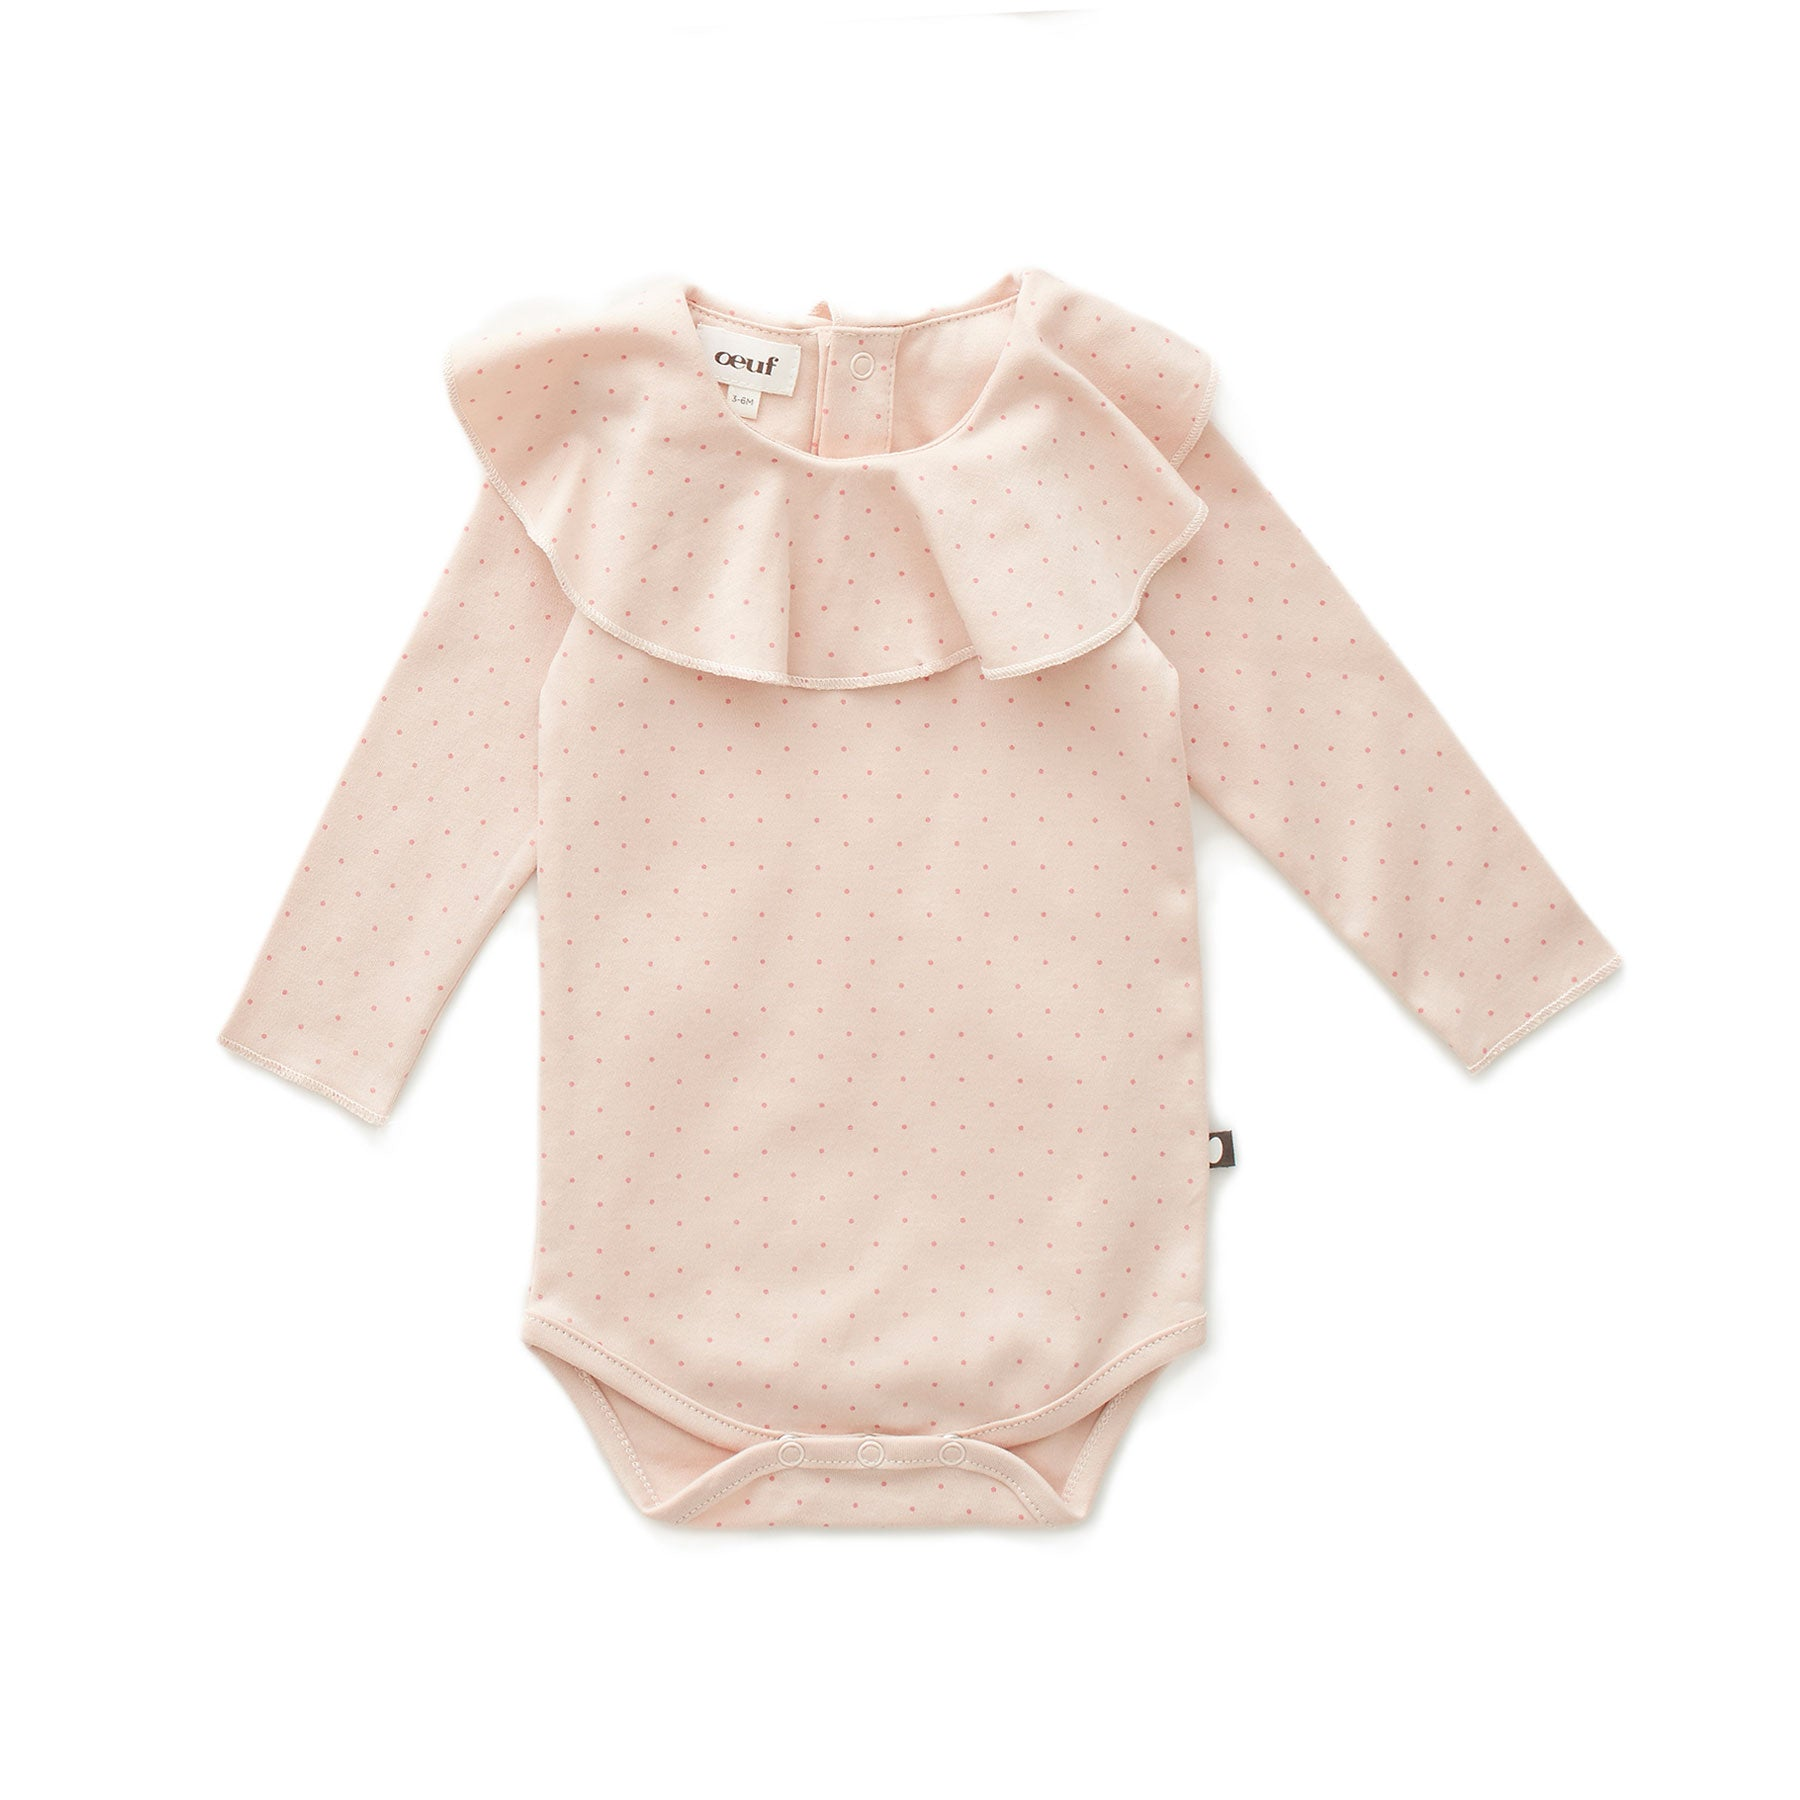 Oeuf Light Pink/Rose Dots Ruffle Collar Onesie - Ladida